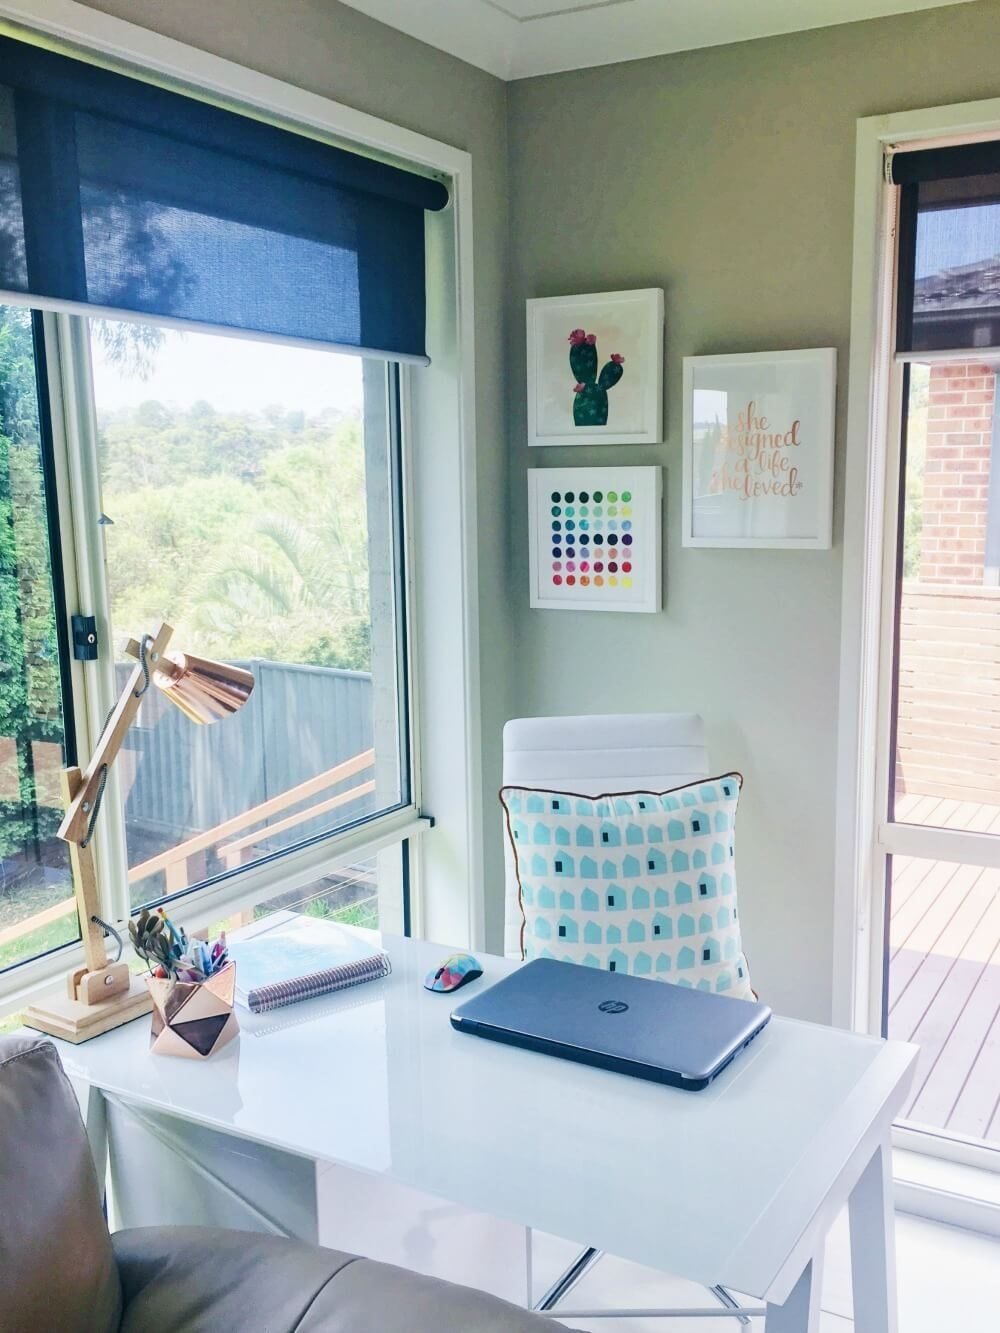 Home Office with tidy desk